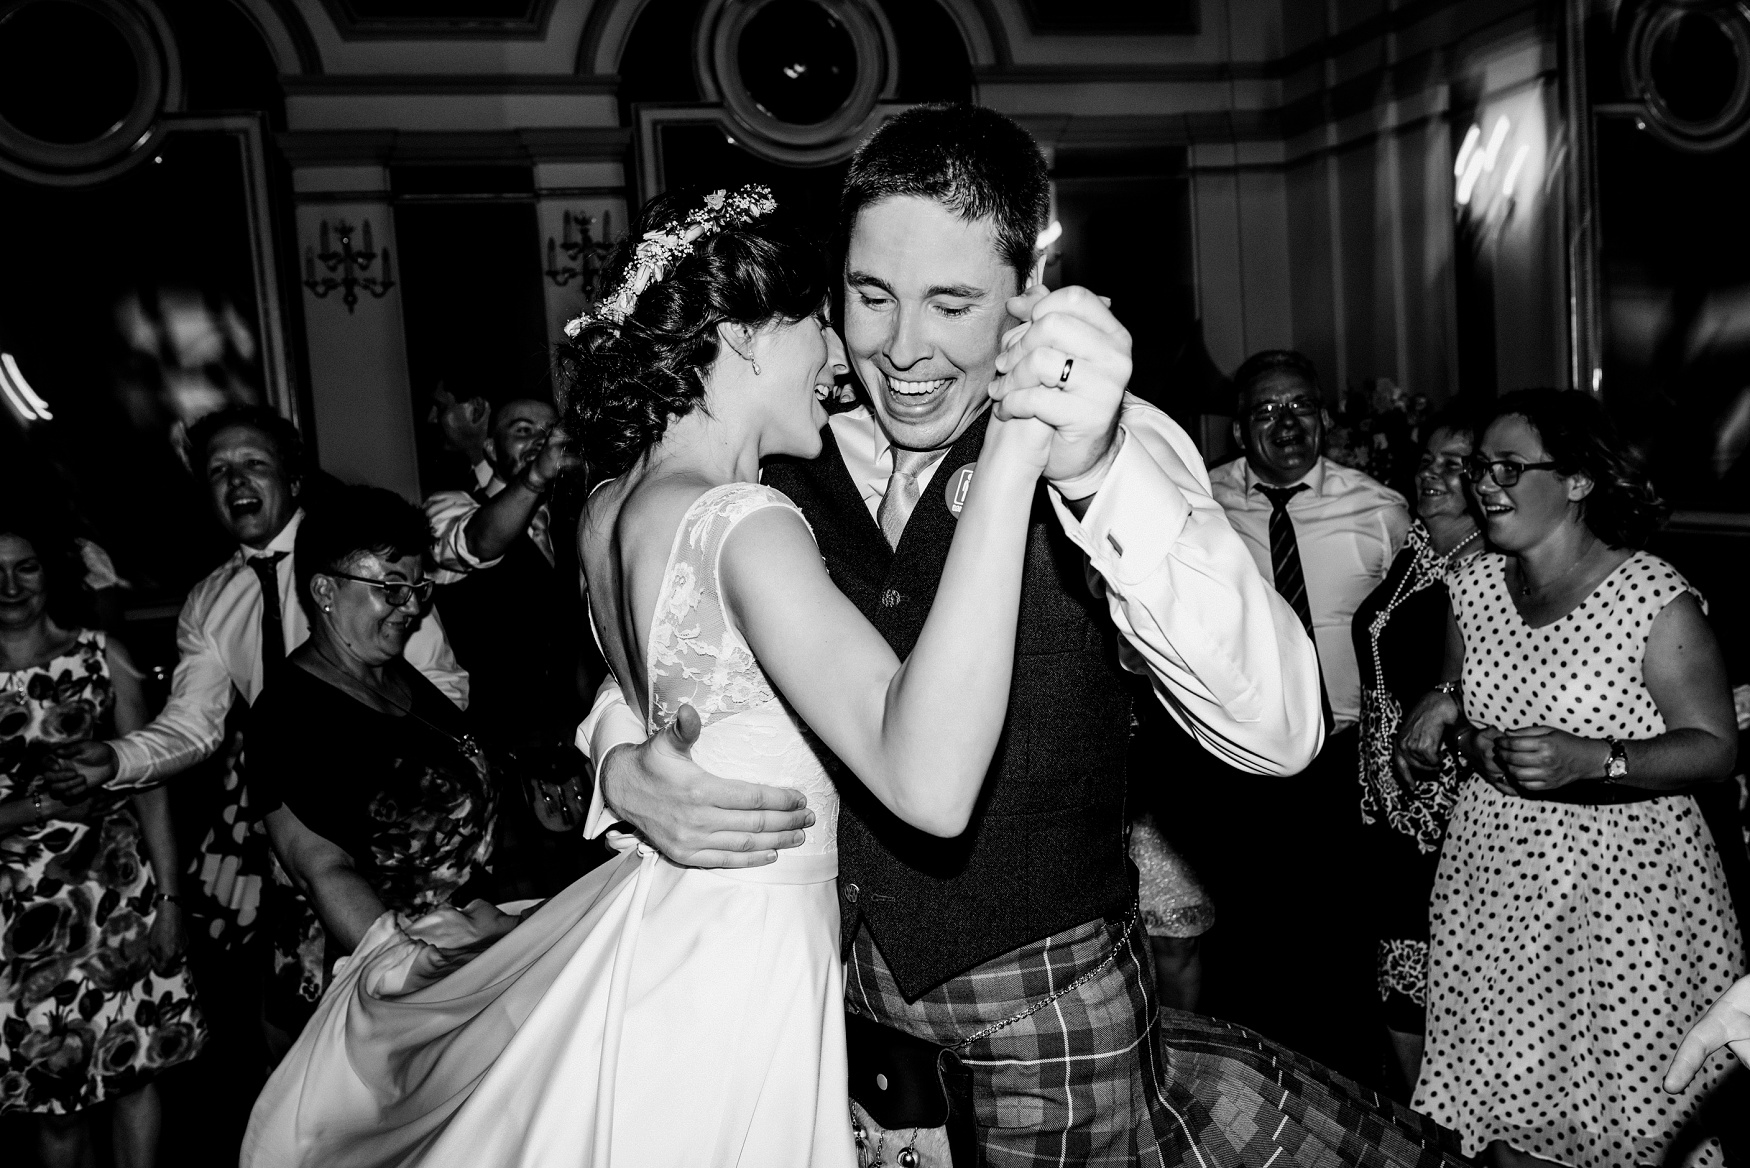 bestof2016_106 krakow scottish wedding.jpg